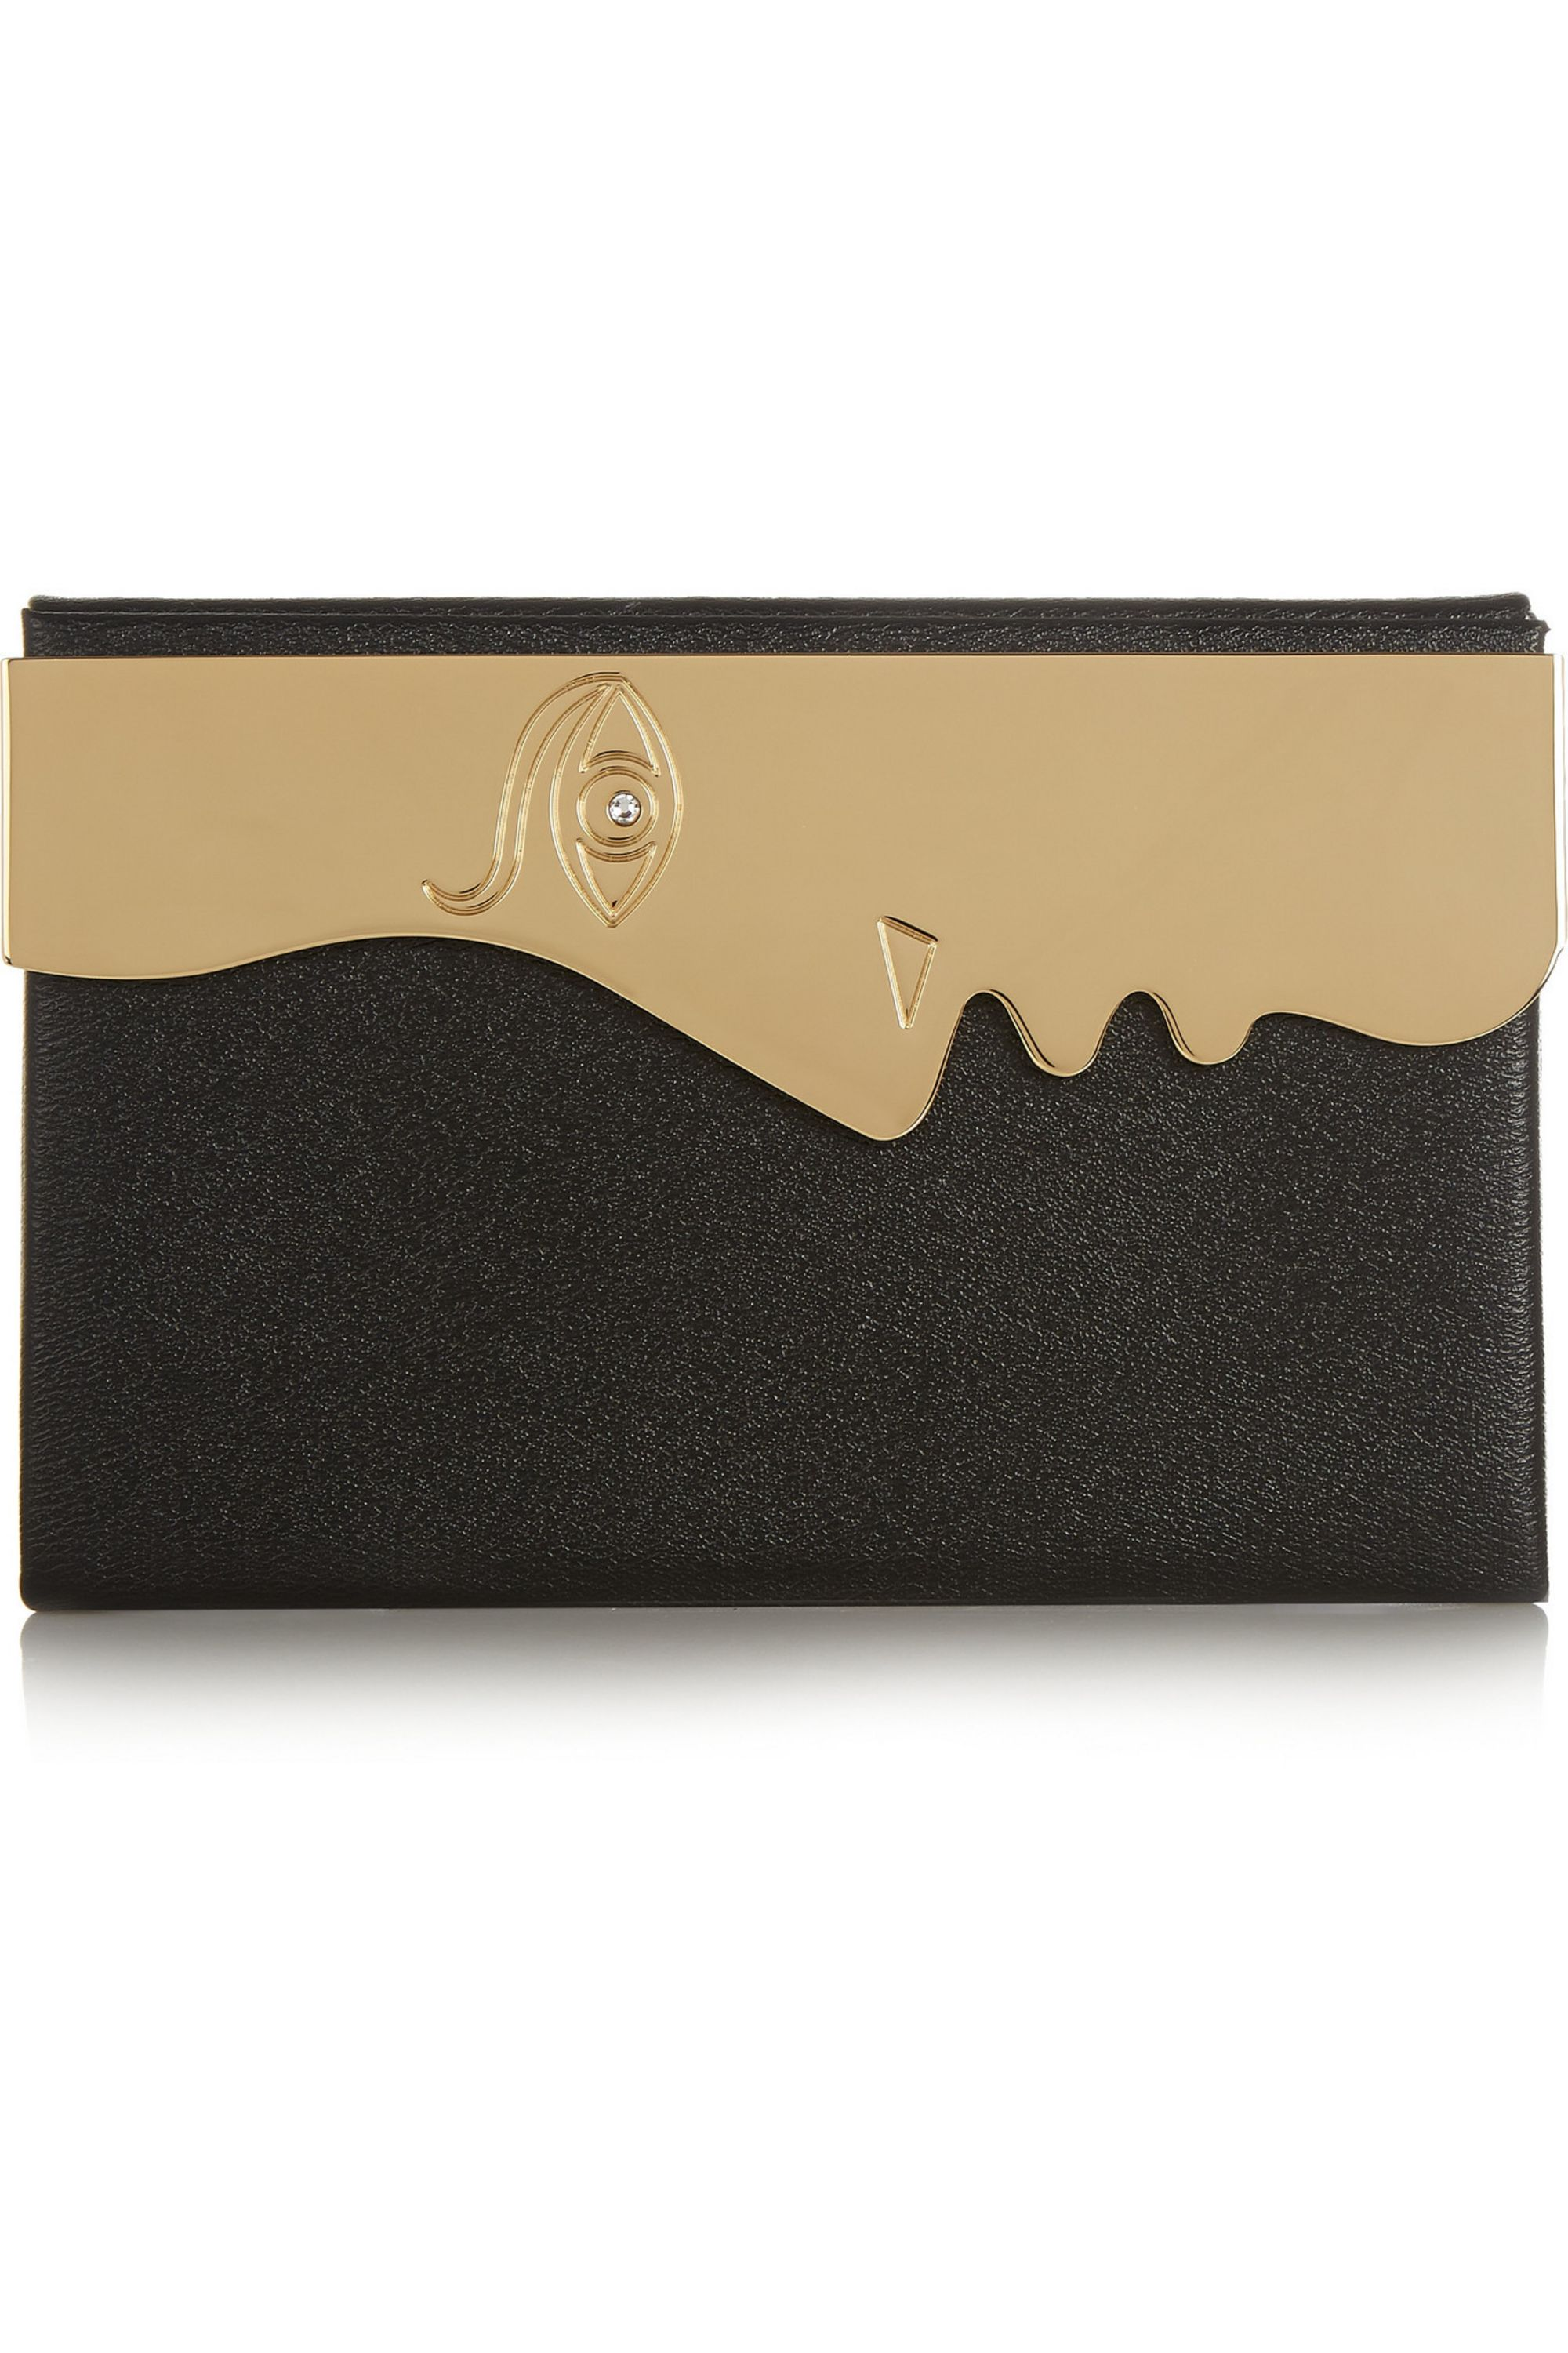 Charlotte Olympia Vanina's Profile gold-tone and textured-leather clutch